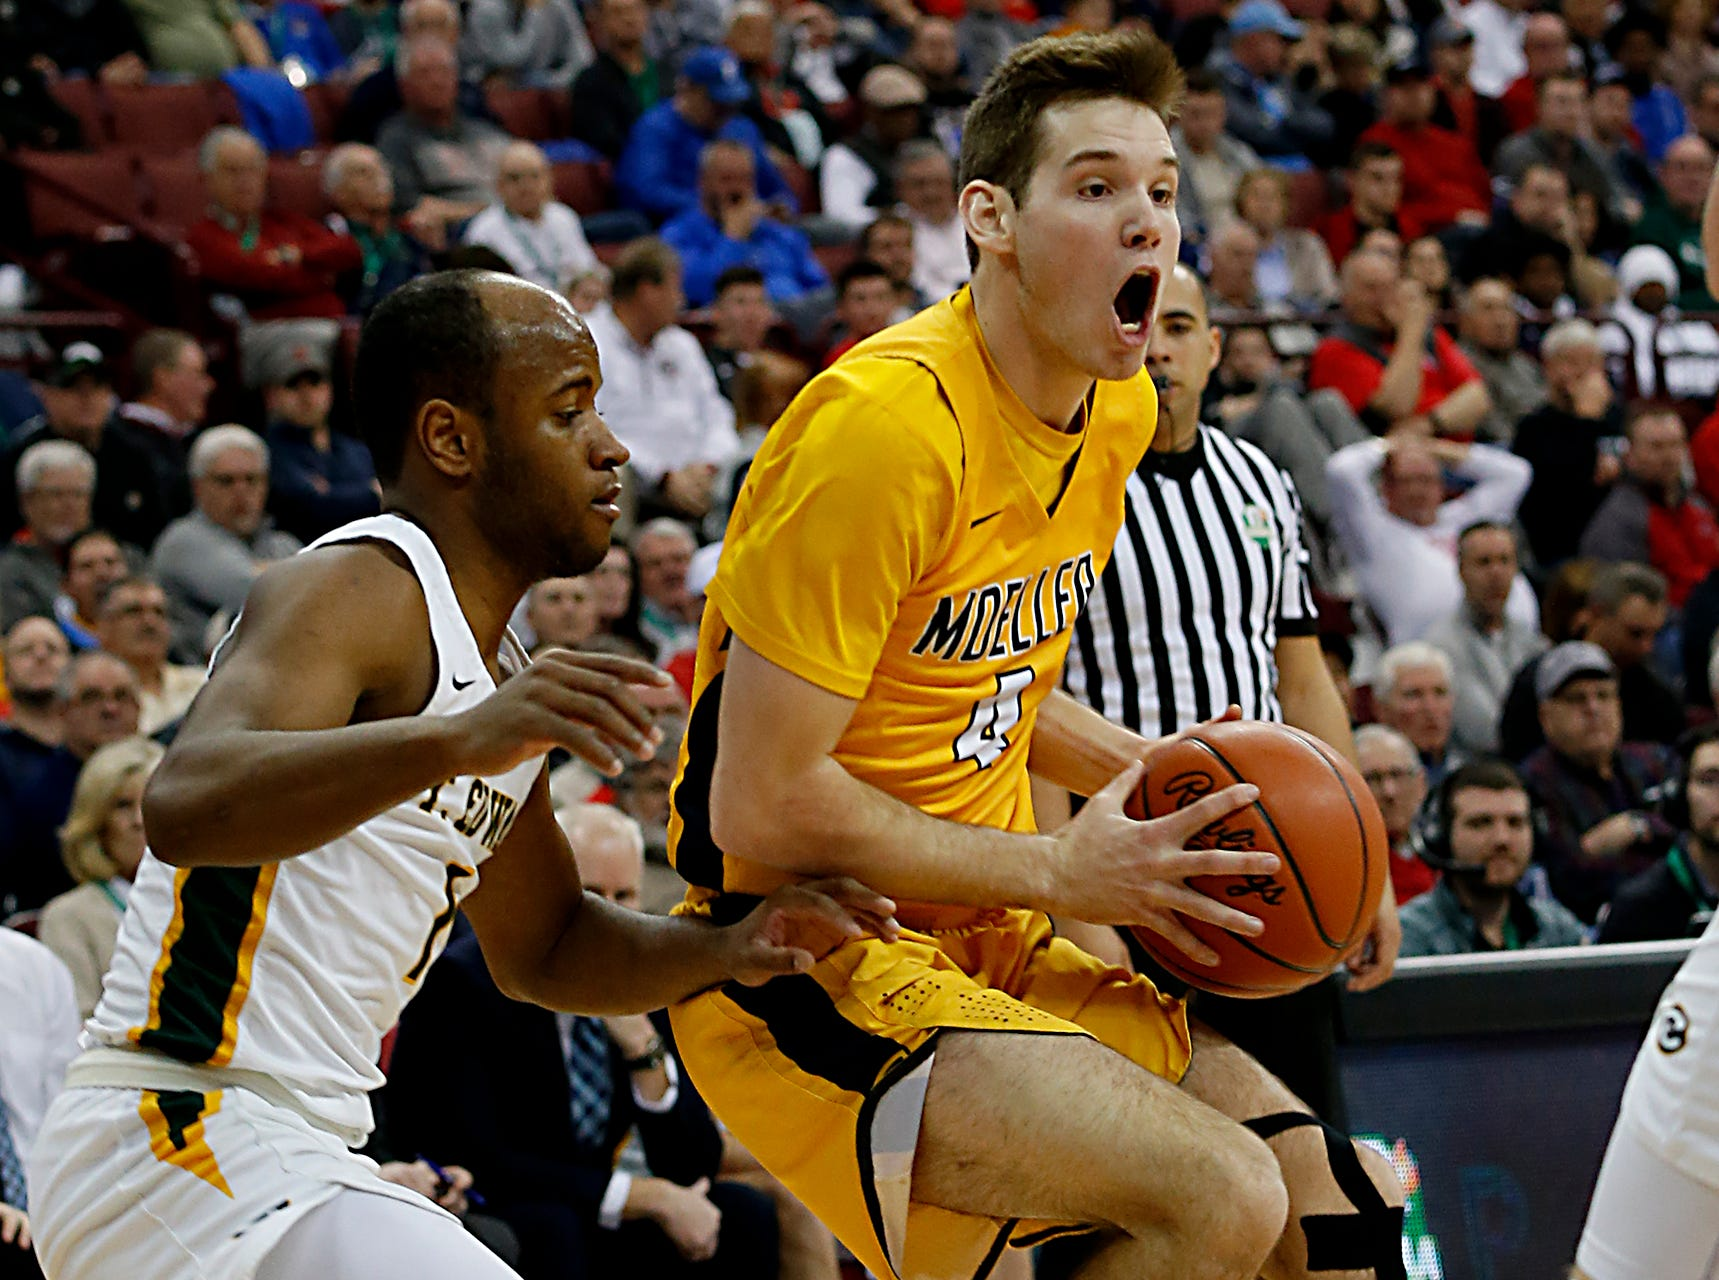 Moeller forward Michael Shipp is covered by St. Edward guard Demetrius Terry during their Division I semifinal at the Schottenstein Center in Columbus Friday, March 22, 2019.